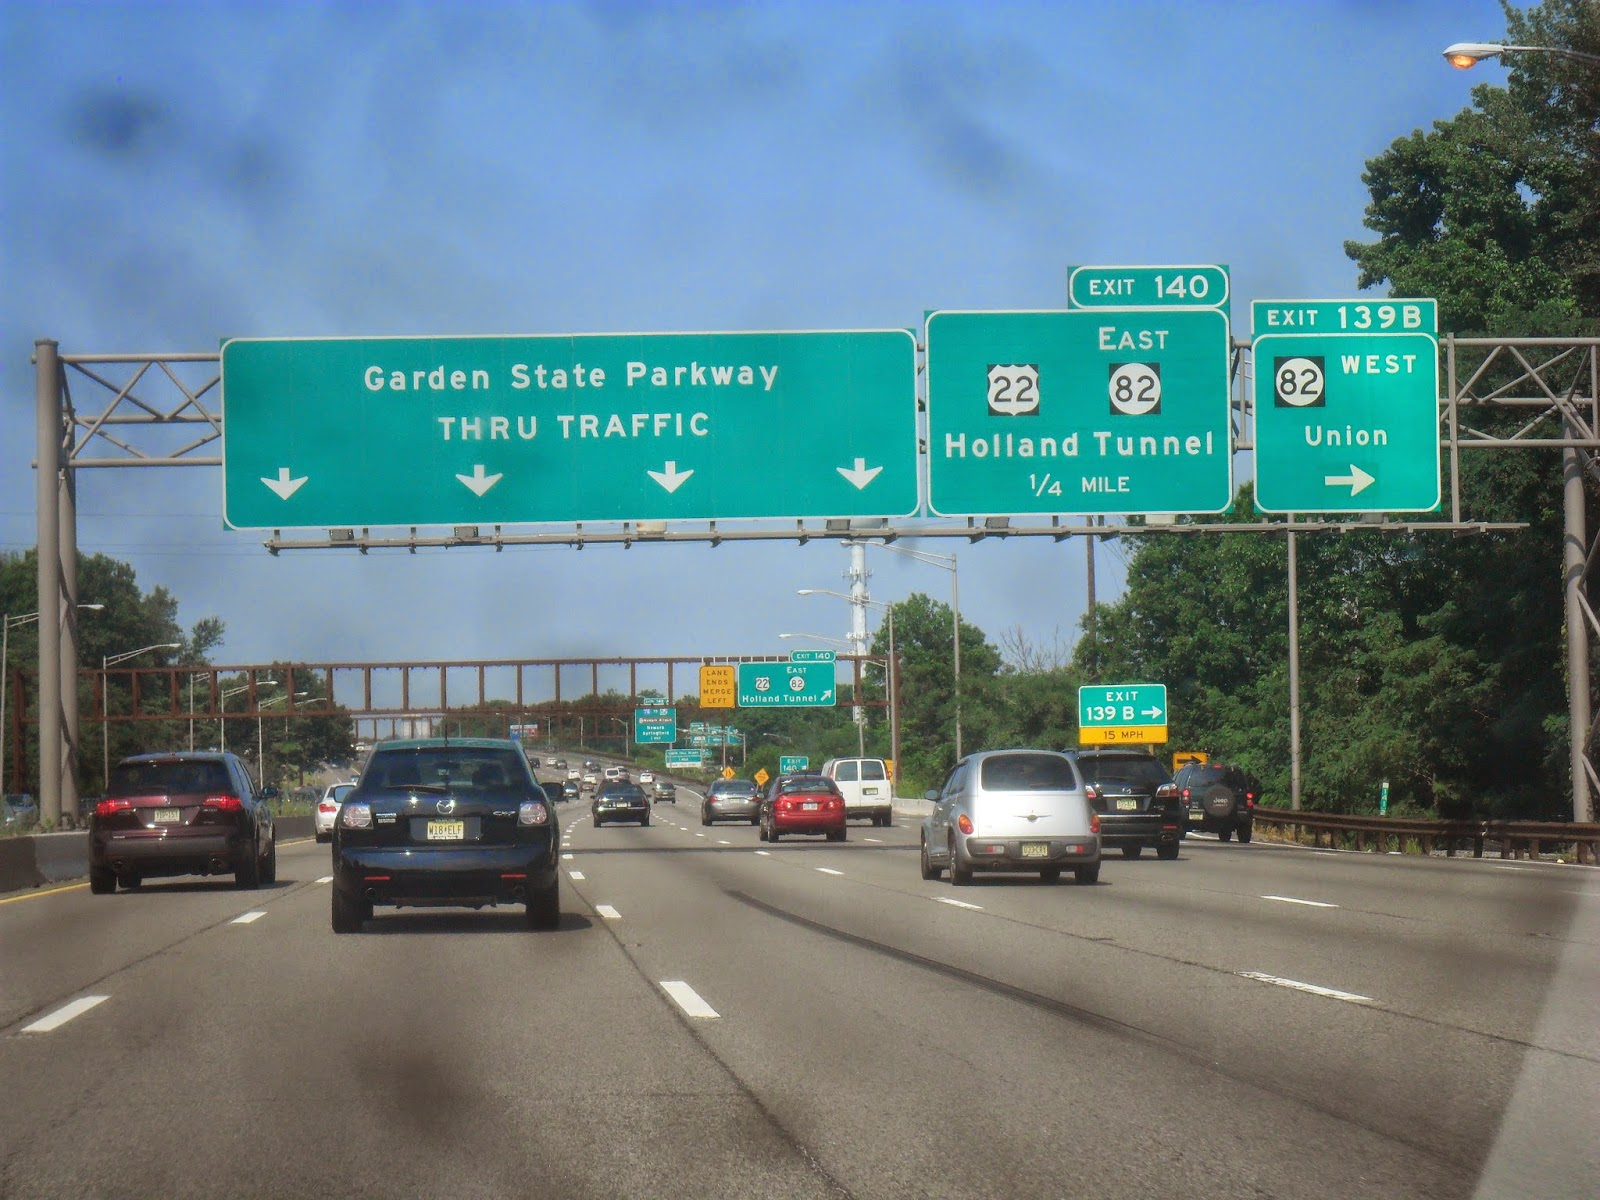 Luke 39 S Signs N J Turnpike Garden State Pkwy New Jersey